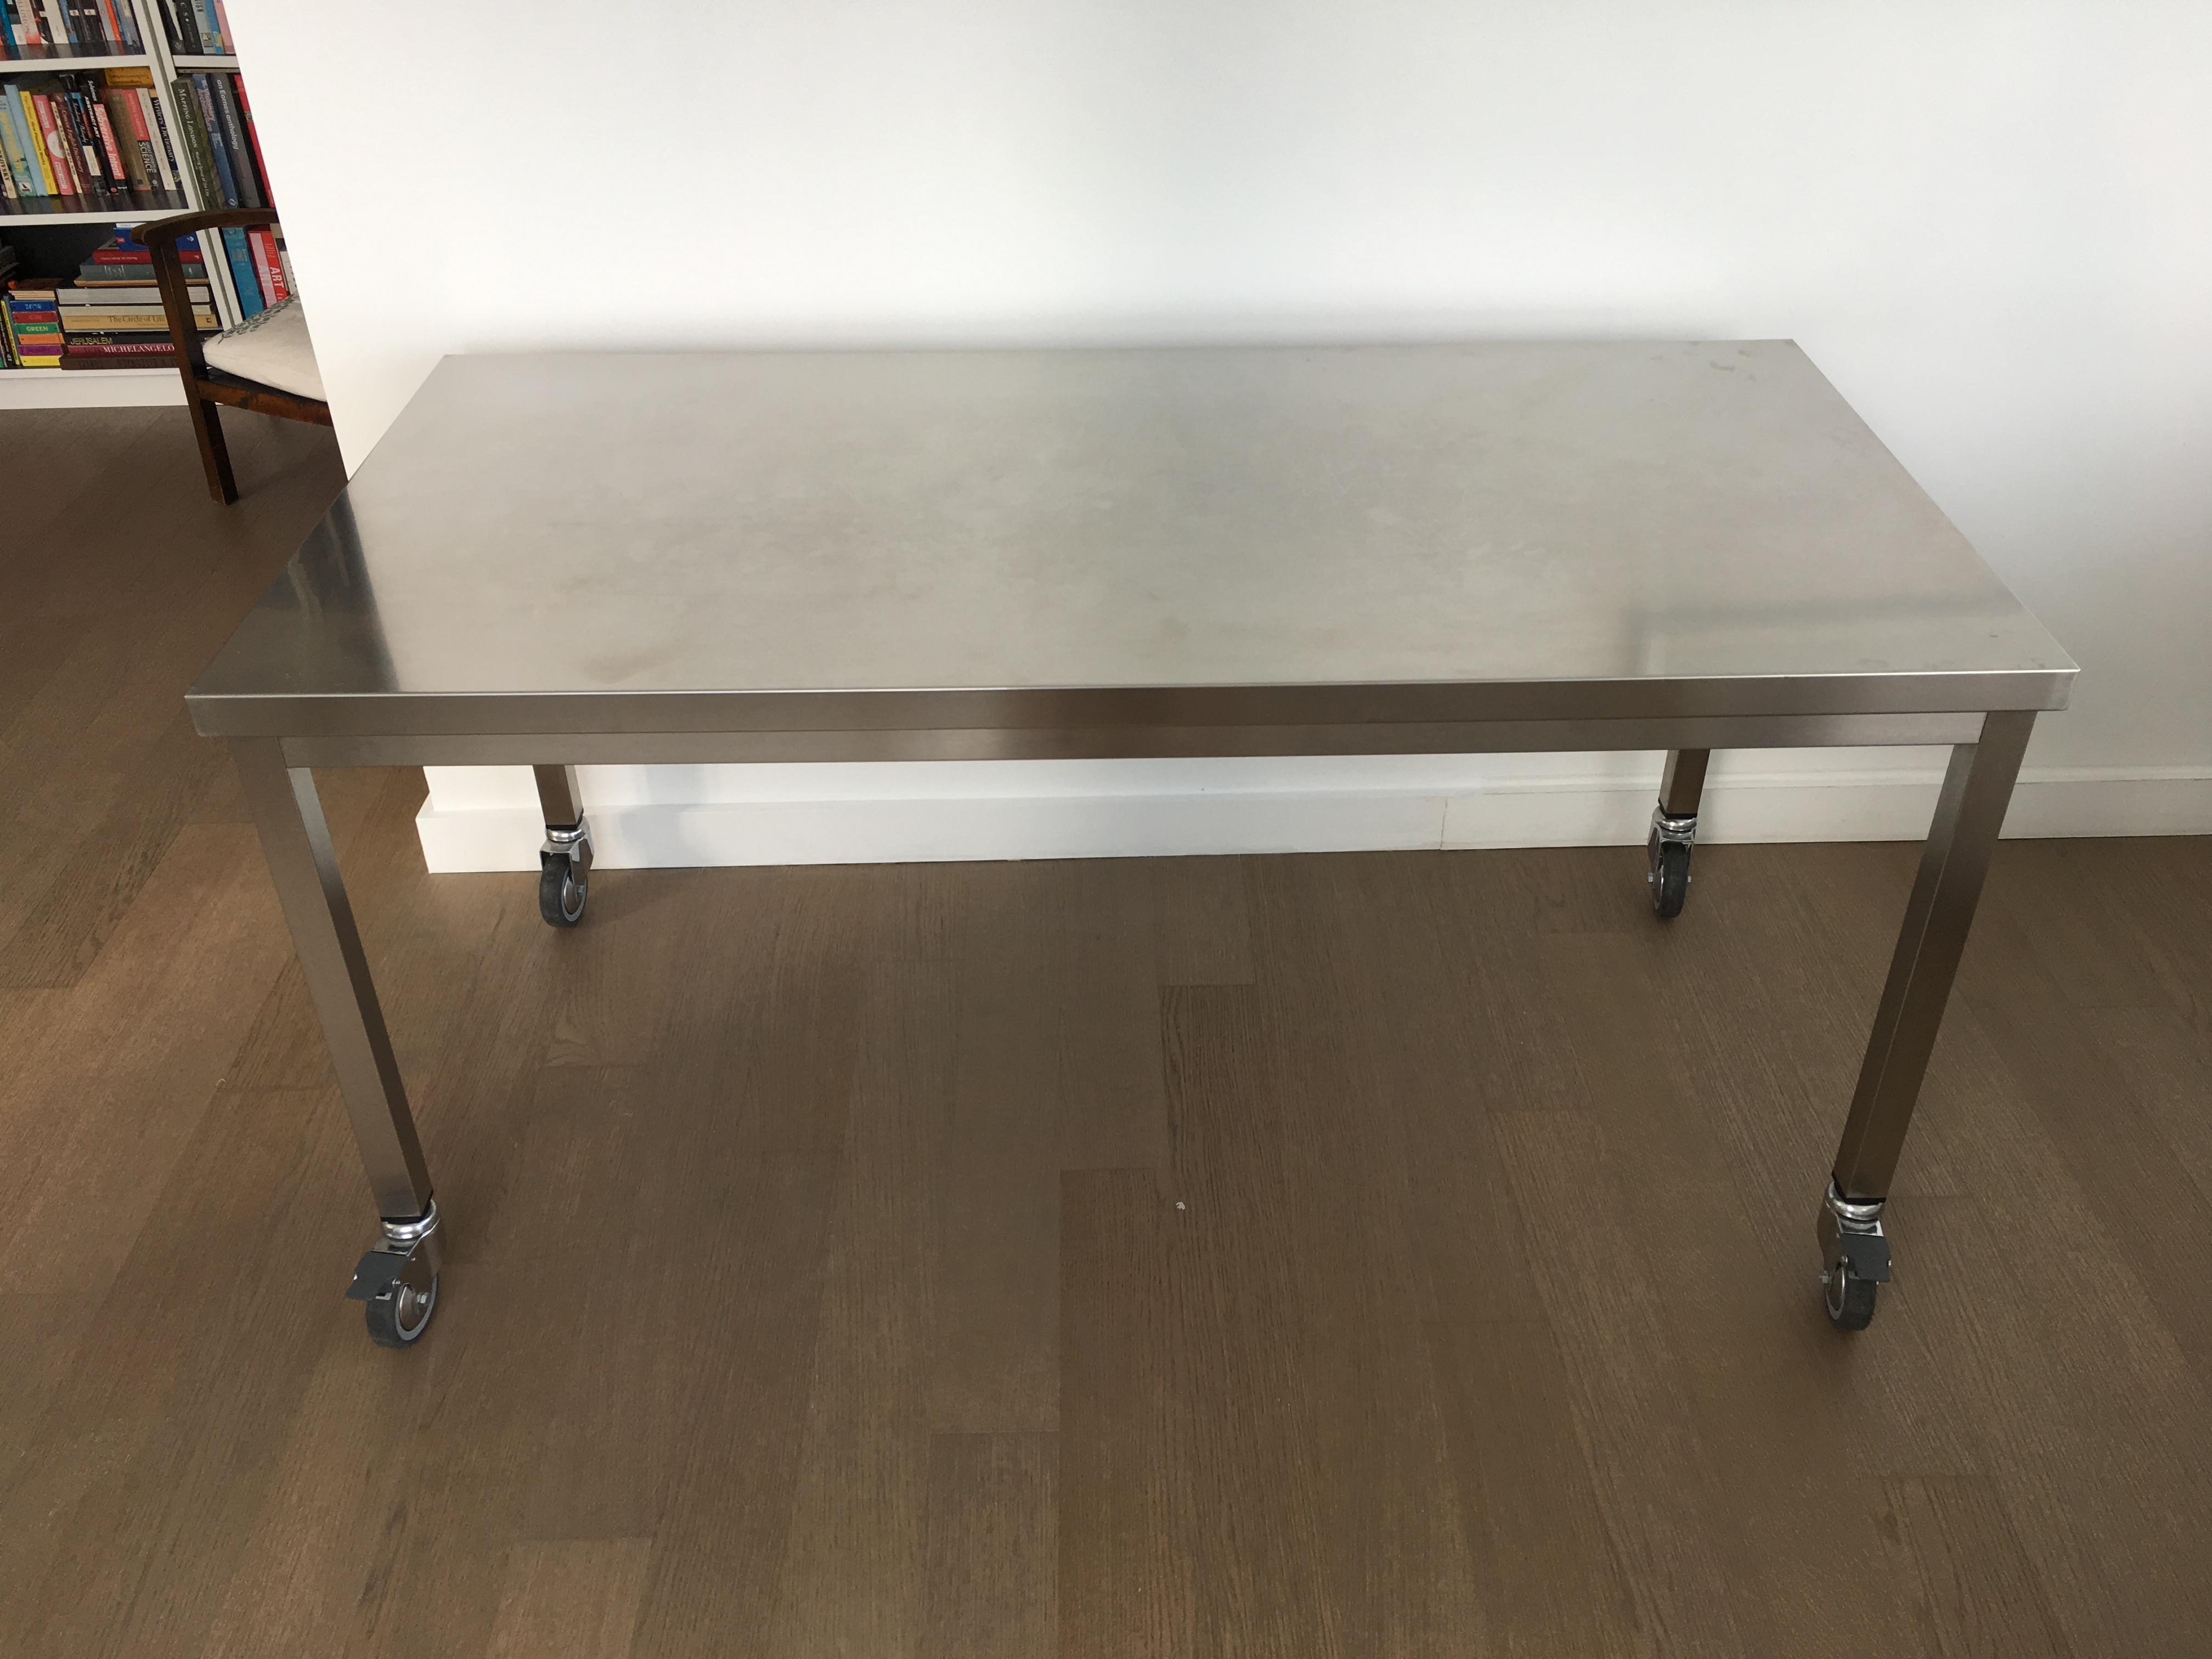 Lovely Quovis Table Designed By Giulio Lazzotti DWR Exclusive   Image 2 Of 5